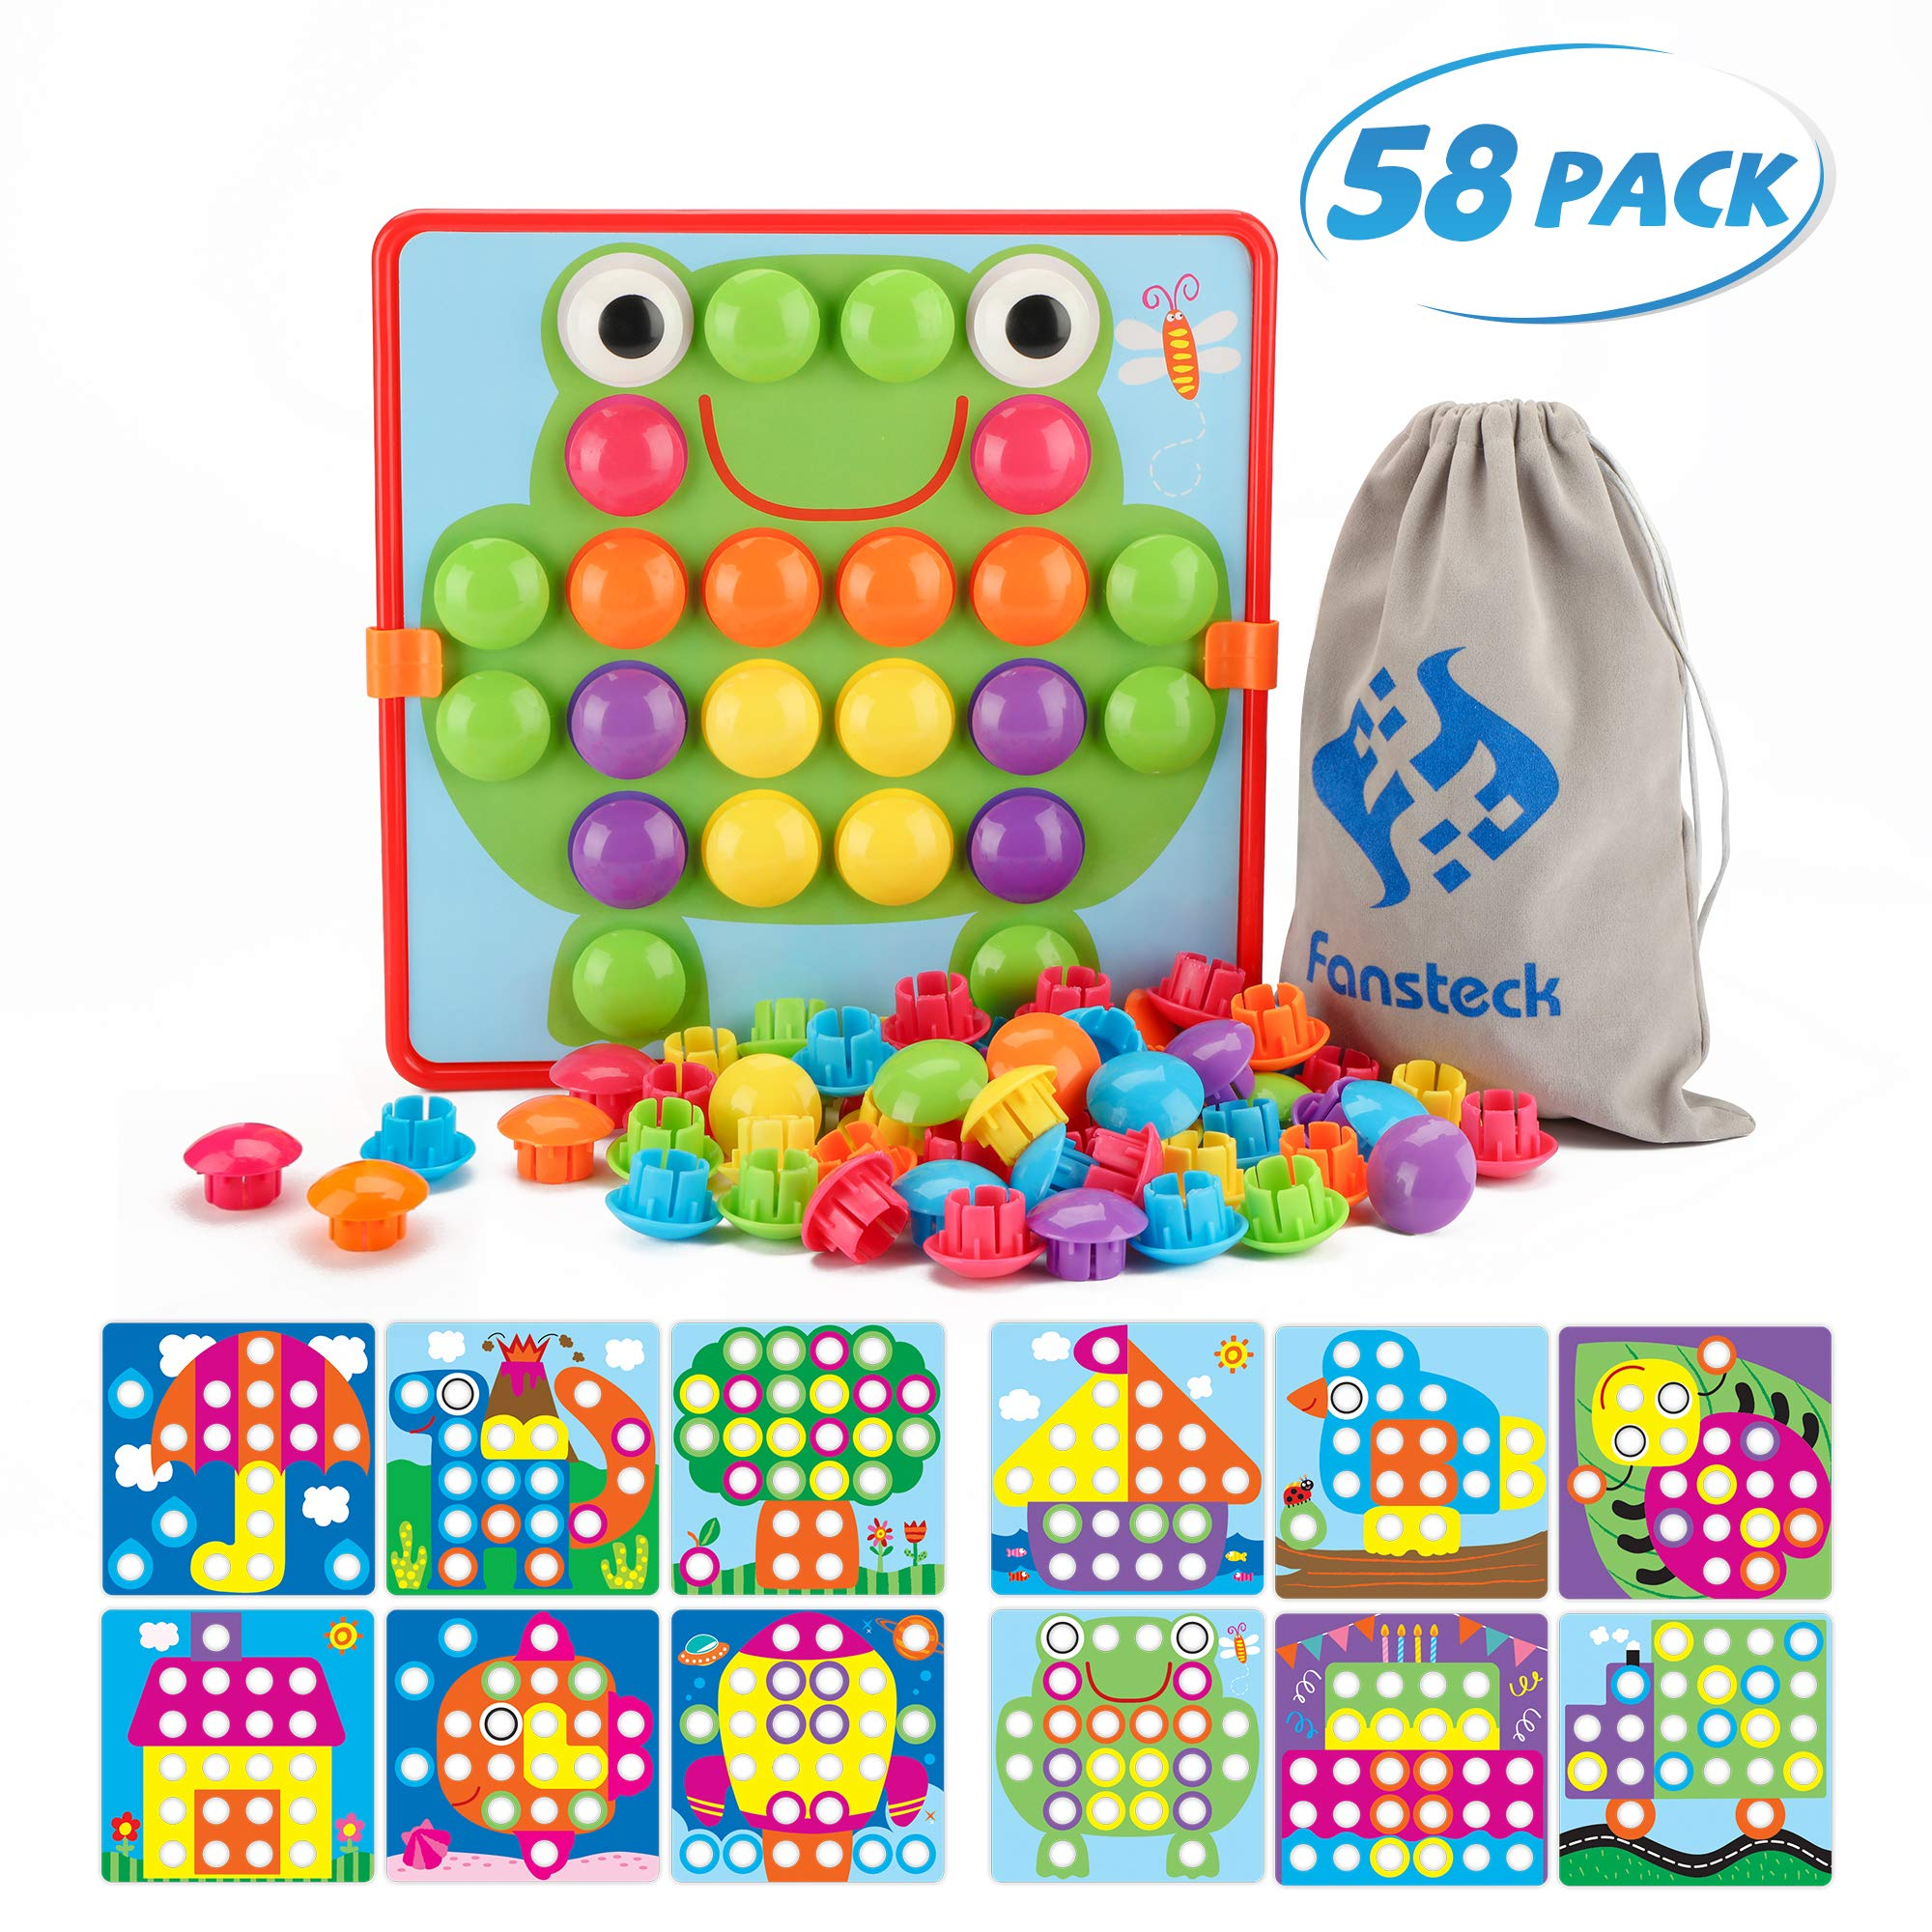 Fansteck Button Art Toys for Toddlers, Color Matching Early Learning Educational Mosaic Pegboard , Safe Nontoxic ABS Plastic Premium Material, 12 Pictures and 46 Buttons (Yellow) by Fansteck